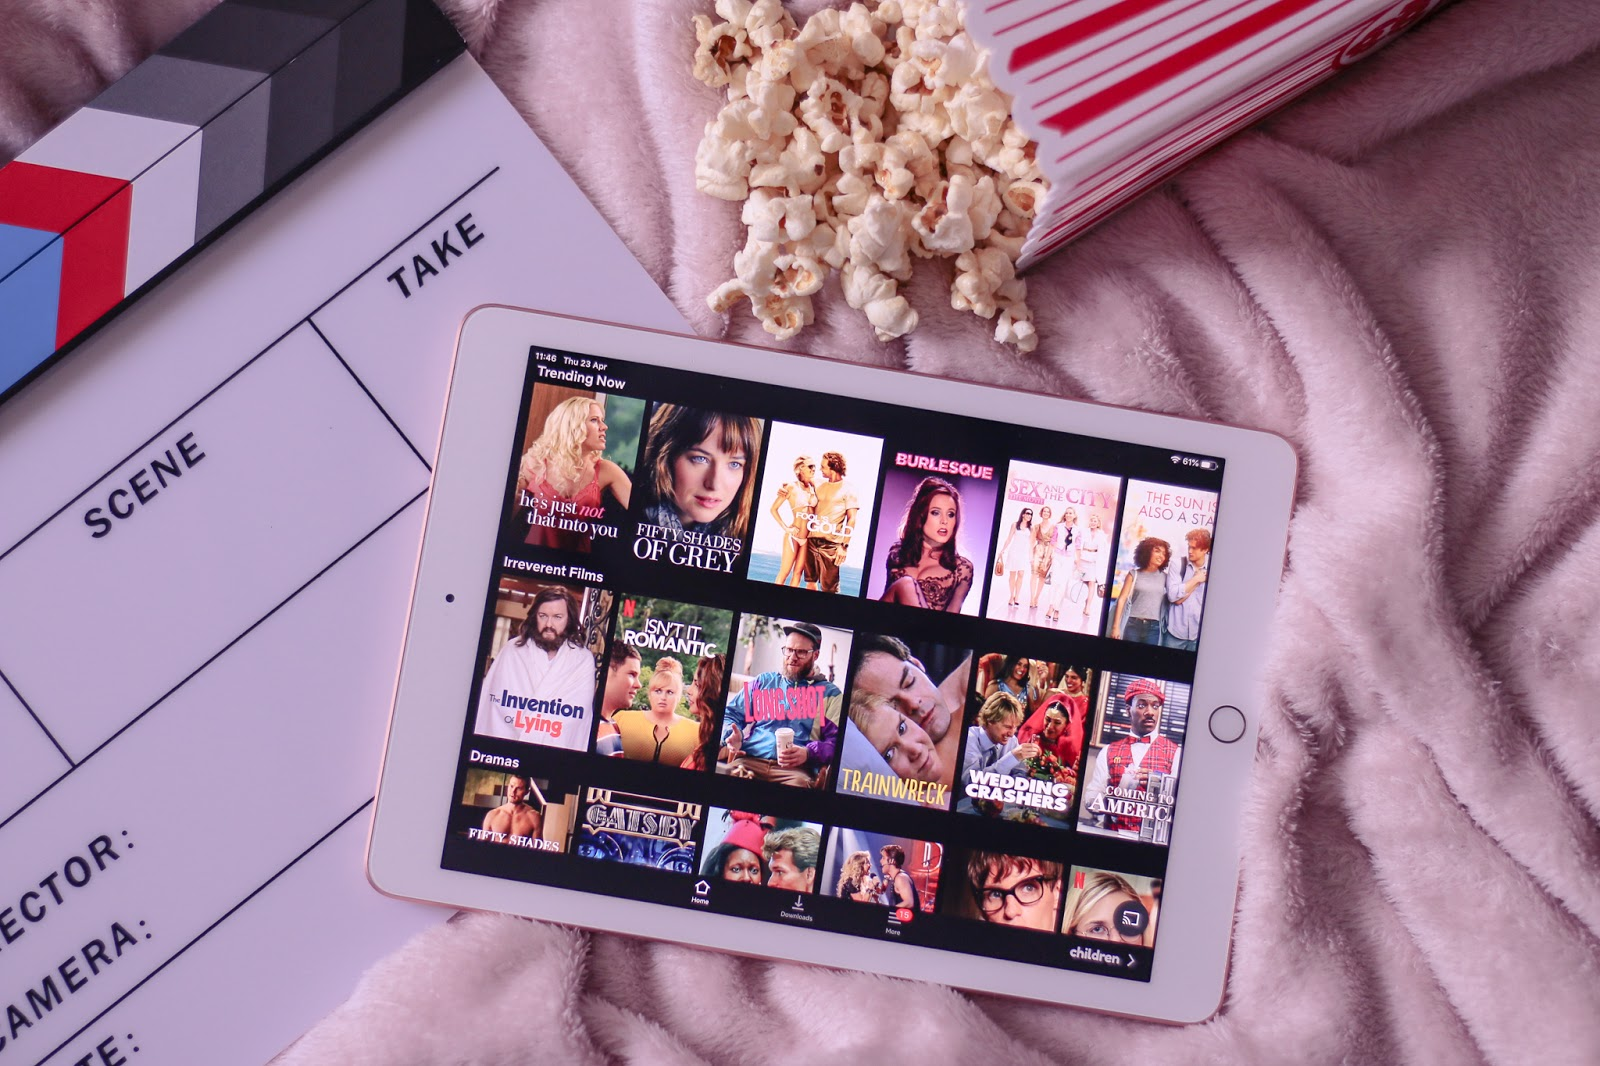 Flatlay photo of a rose gold iPad, Clap board and popcorn on top of a pink blanket